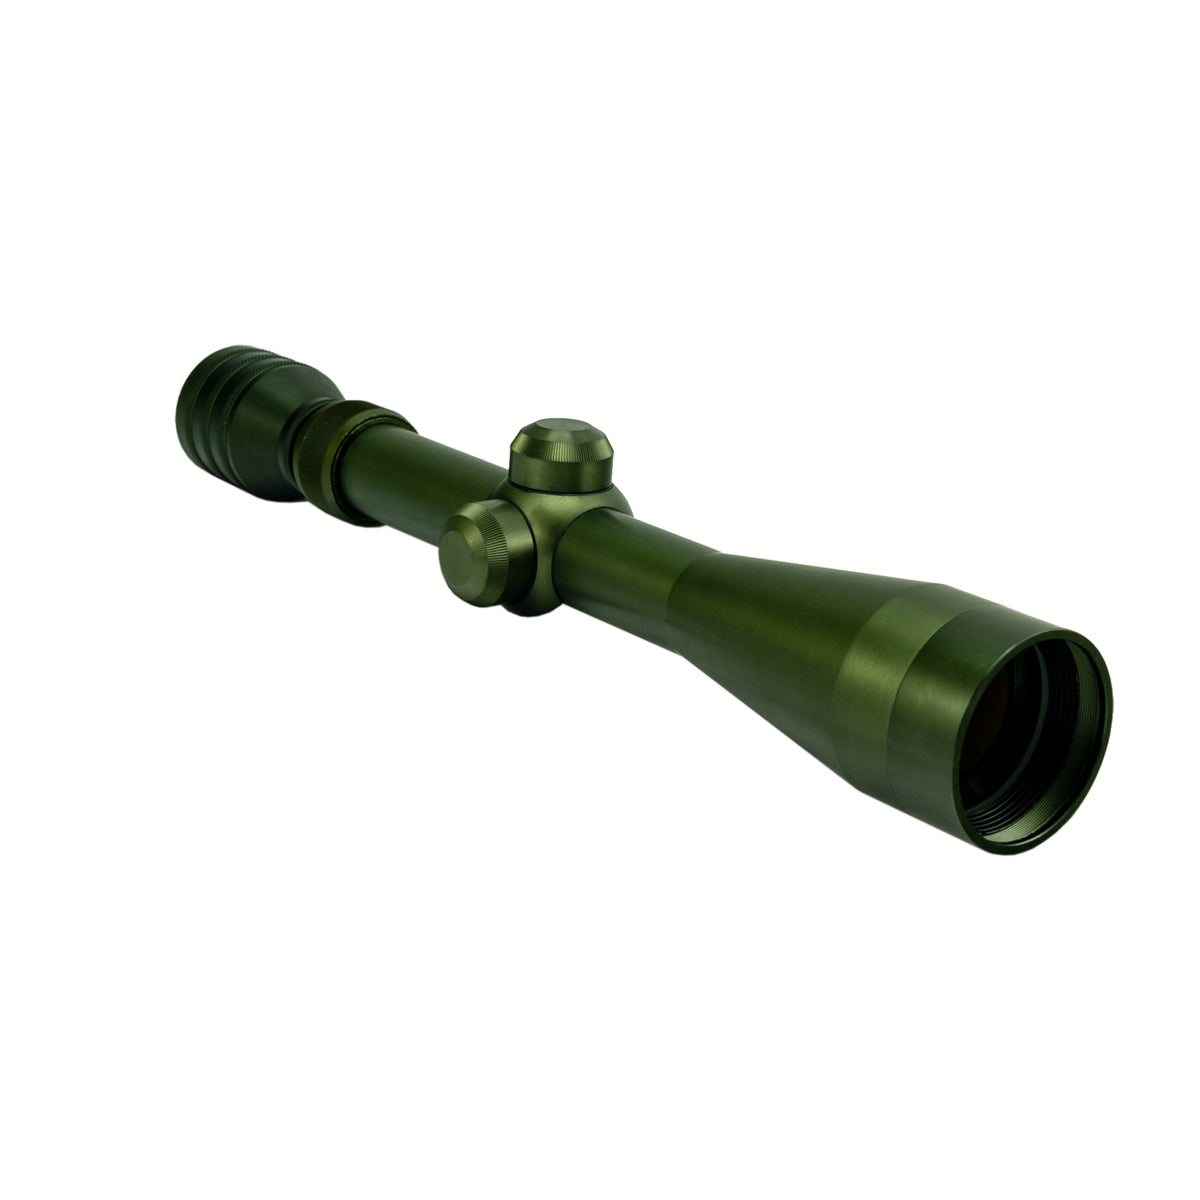 M40 USMC Rifle Scope Rear Angle